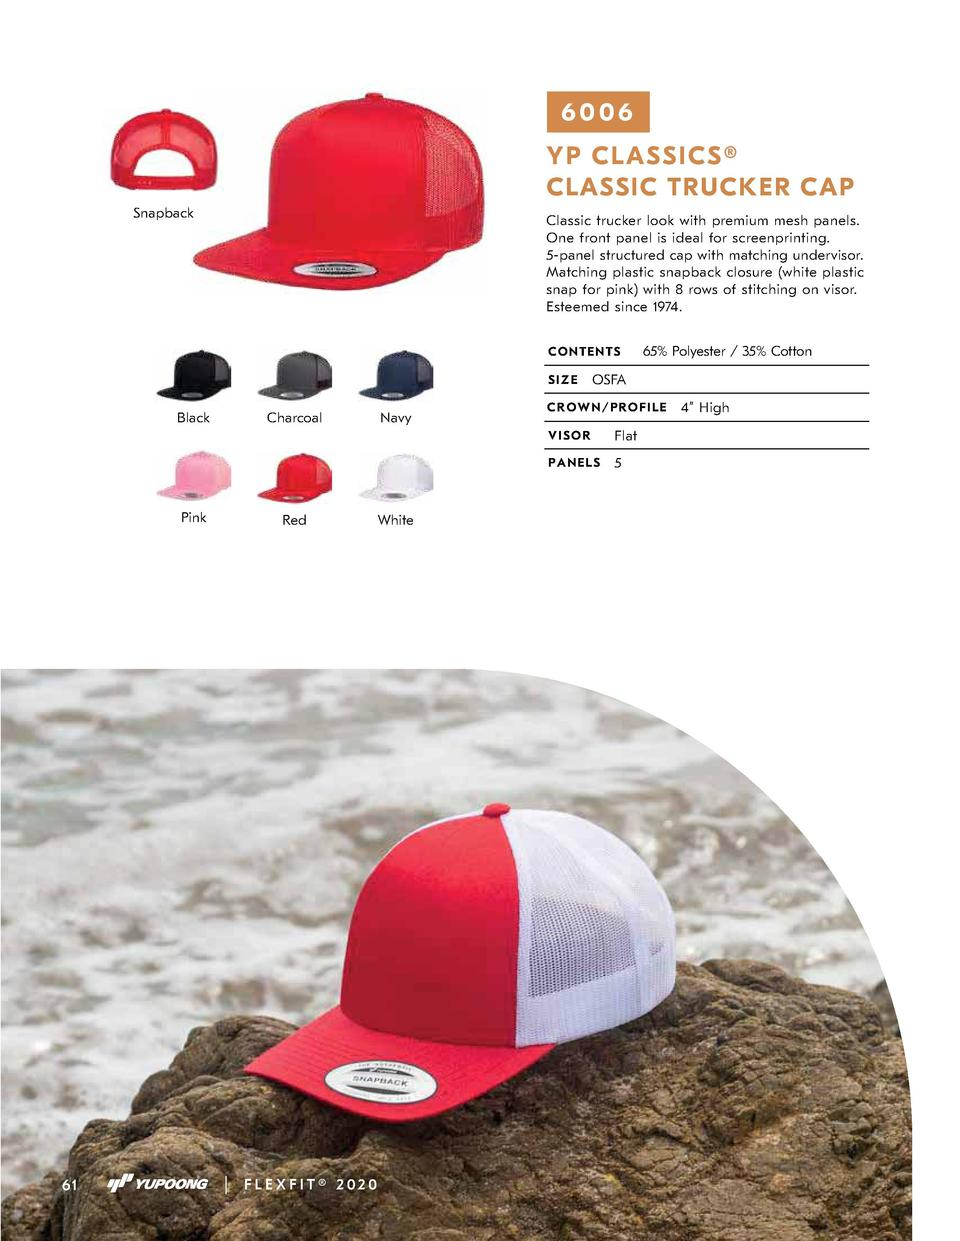 6006 Y P CLAS S ICS    CLASSIC TRUCKER CAP Snapback  Classic trucker look with premium mesh panels. One front panel is ide...